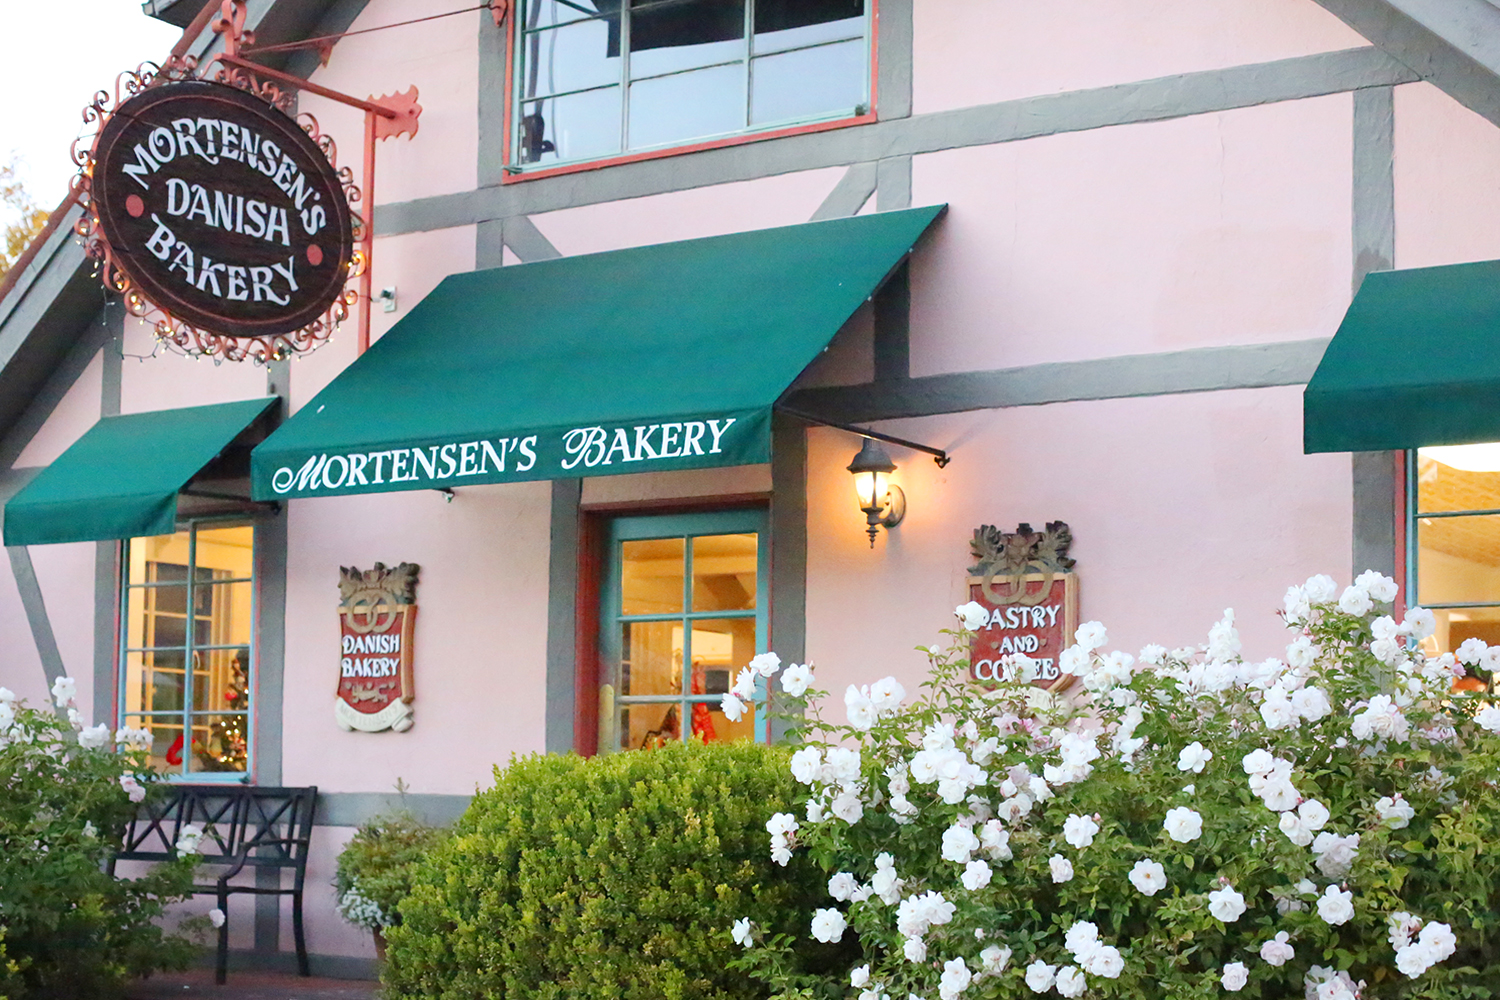 Beyond Basic Blog Christmas in Solvang California Mortensen's Bakery